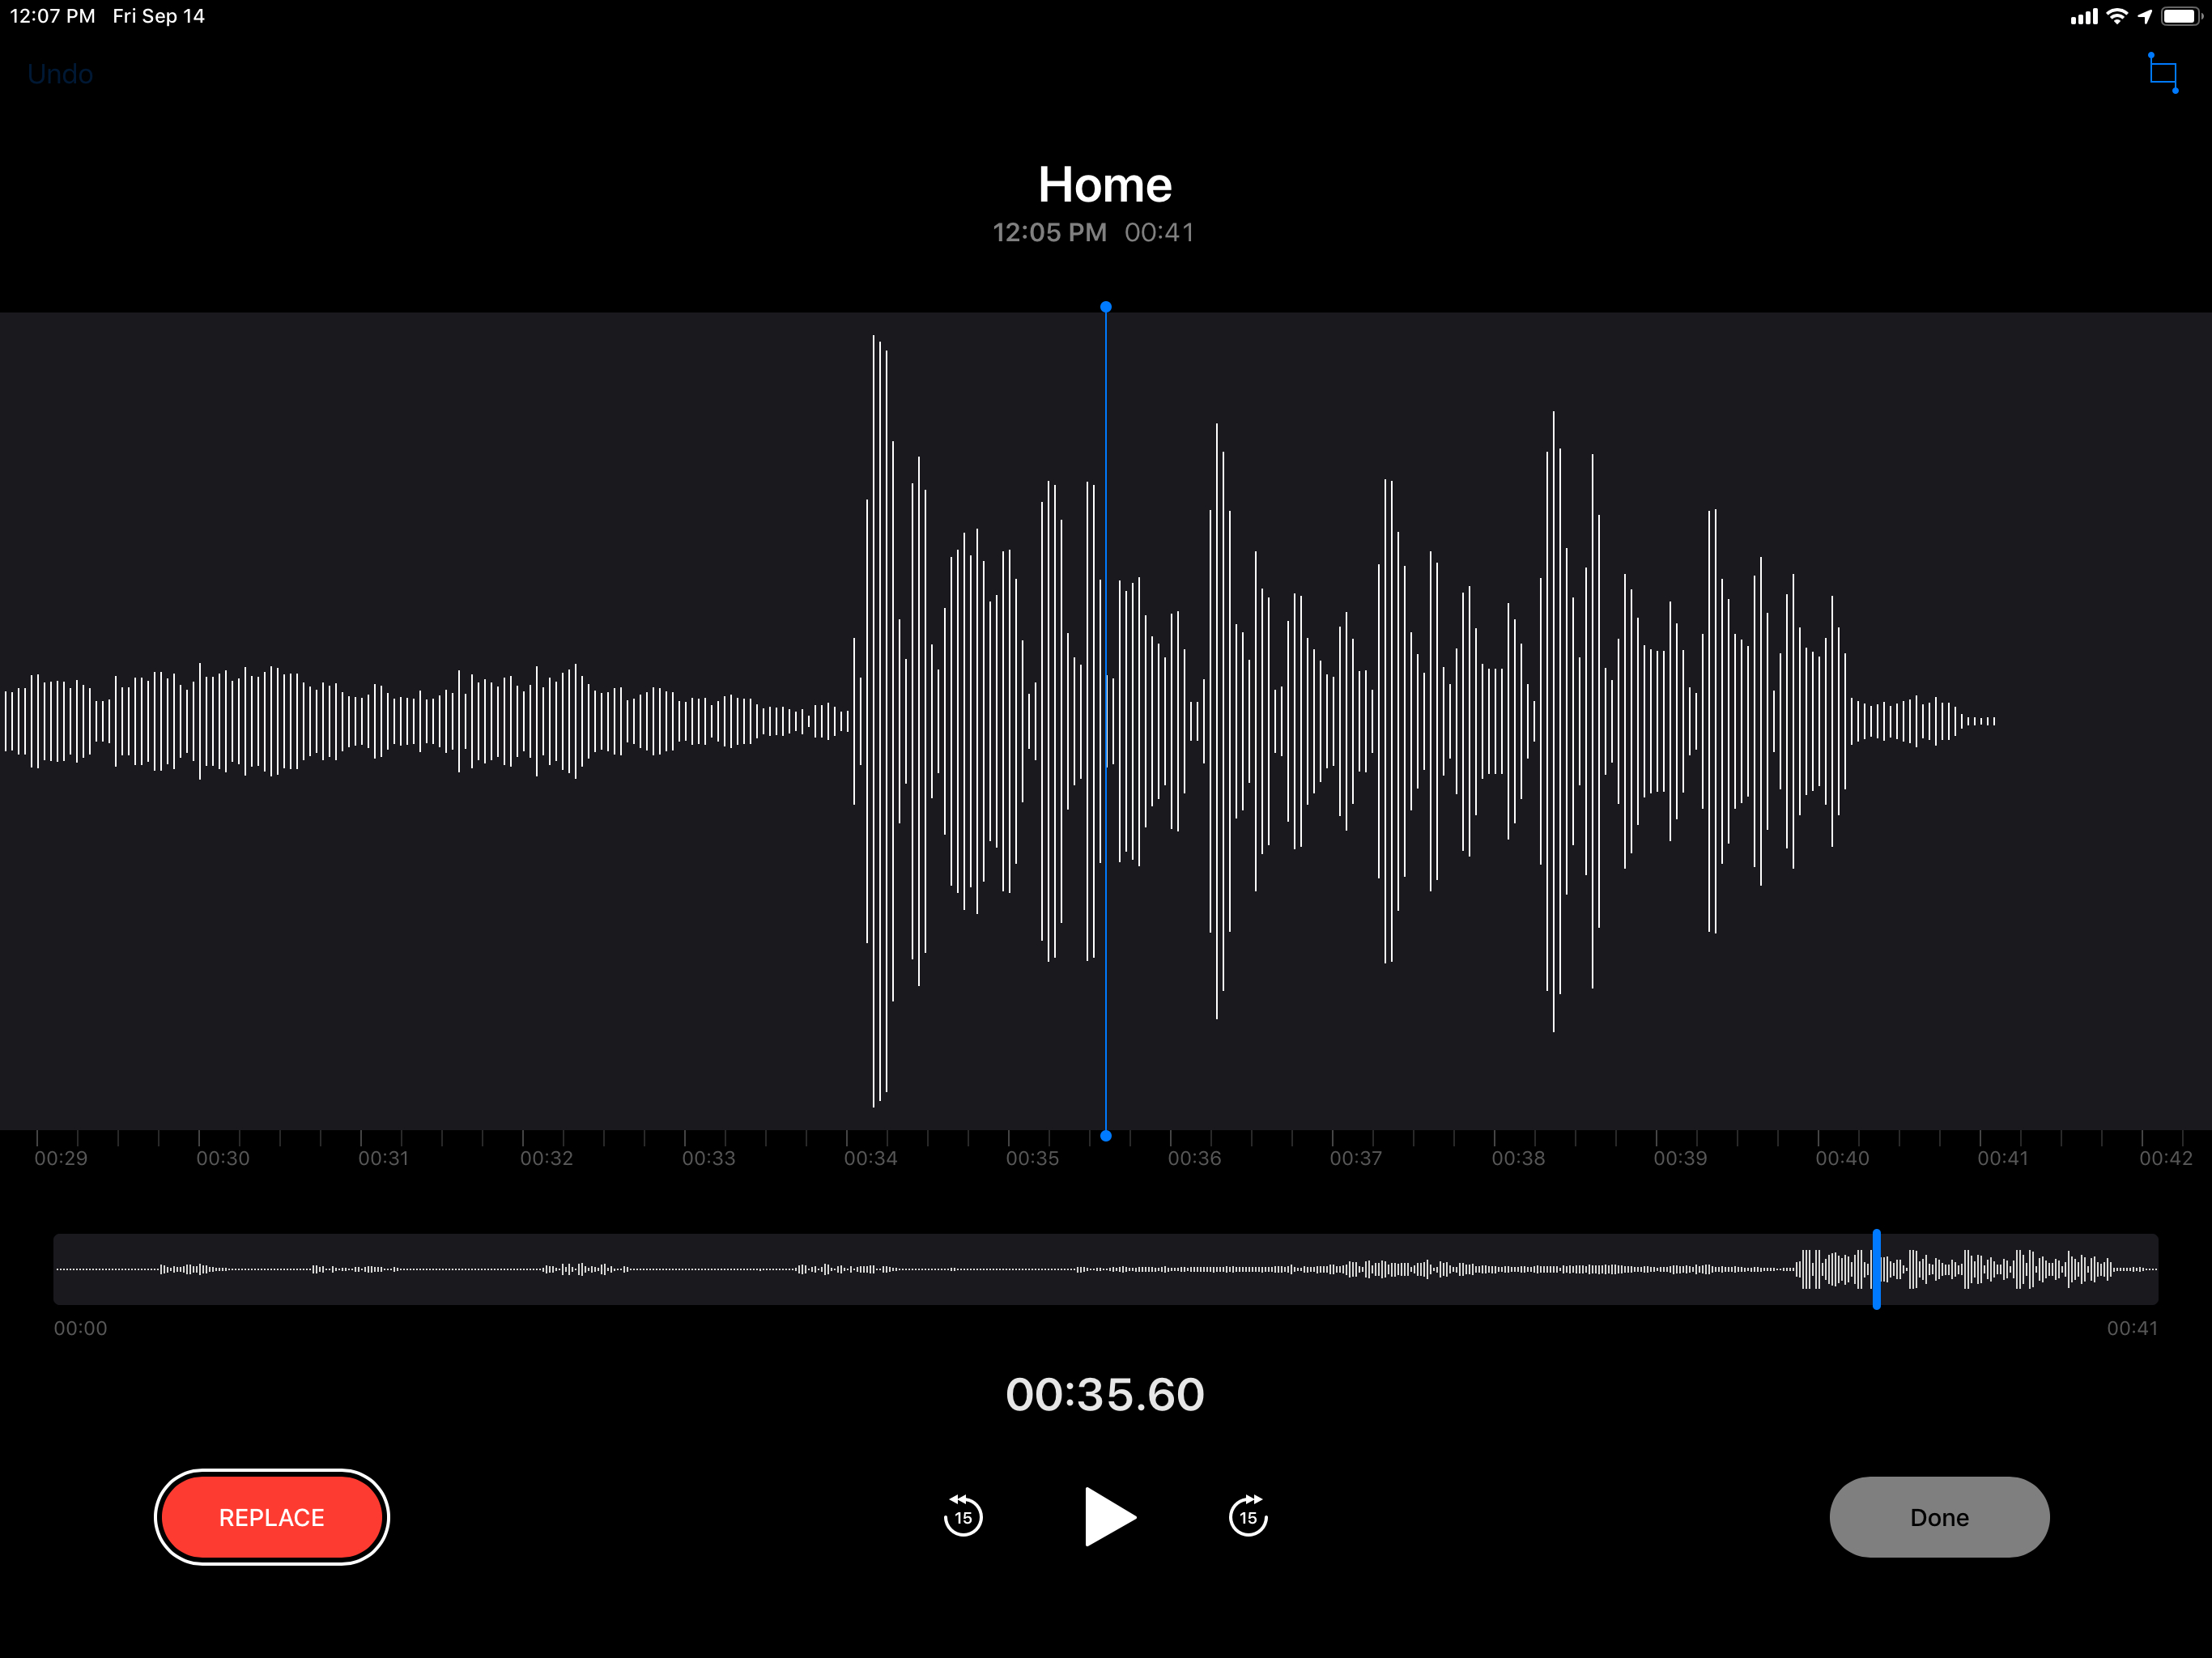 The editing interface for Voice Memos on iPad.